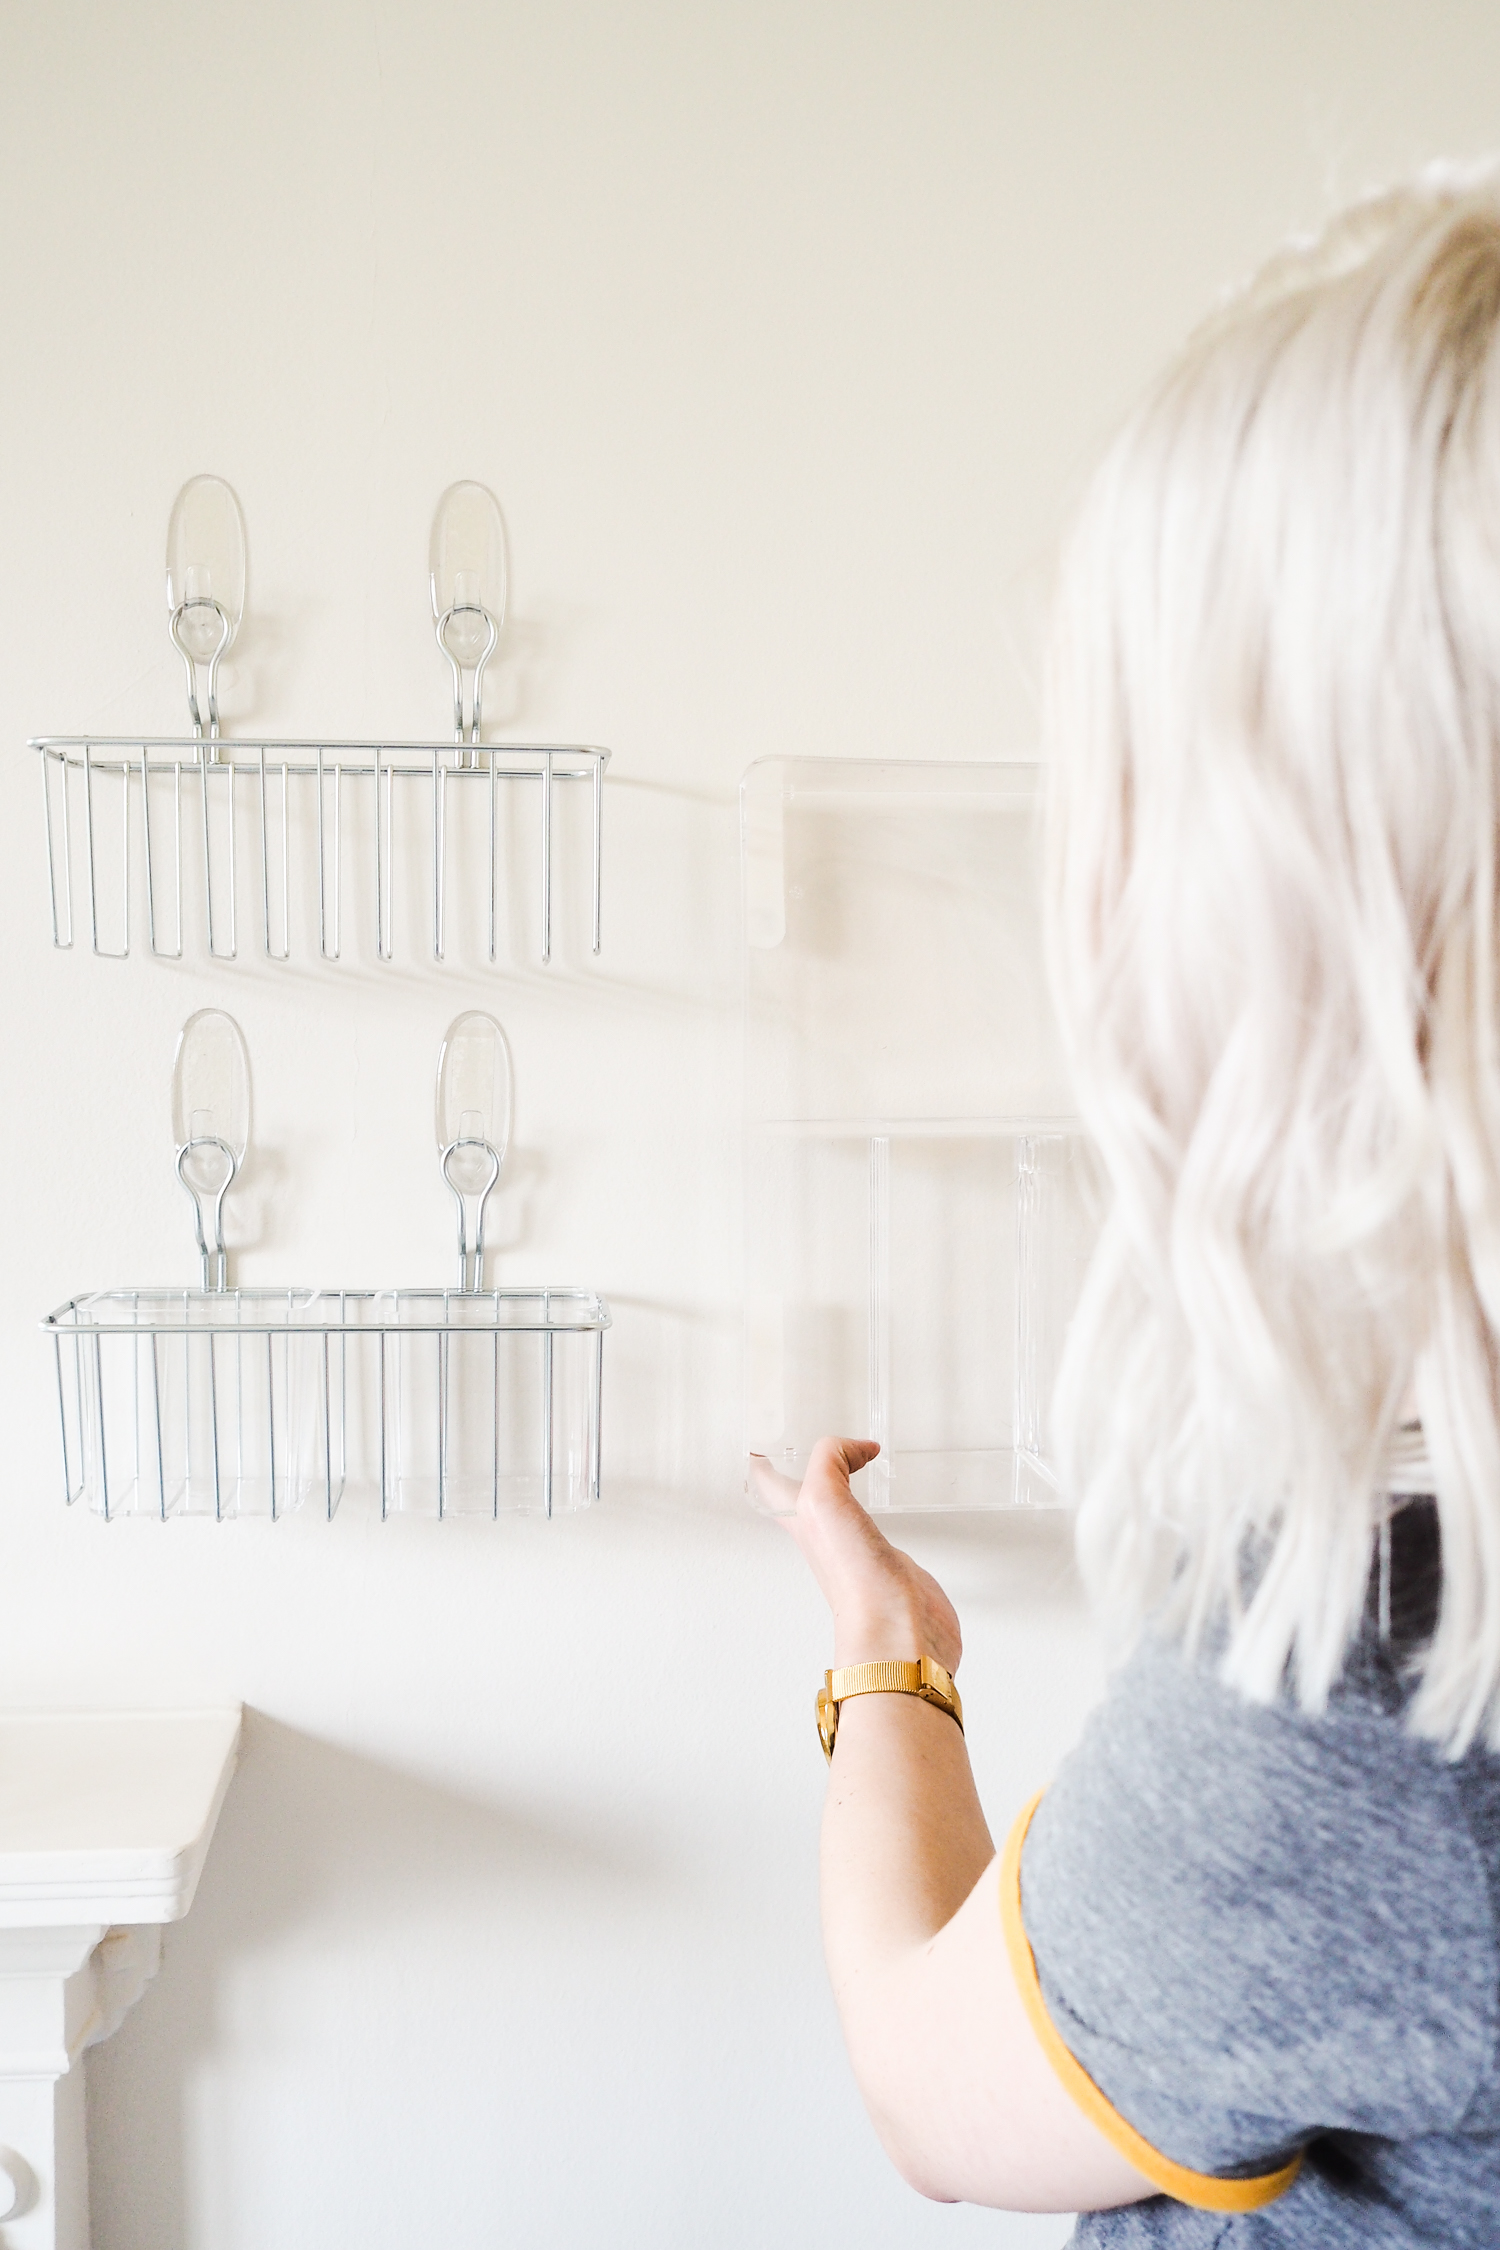 In this latest post I created an acrylic makeup storage solution for £40!